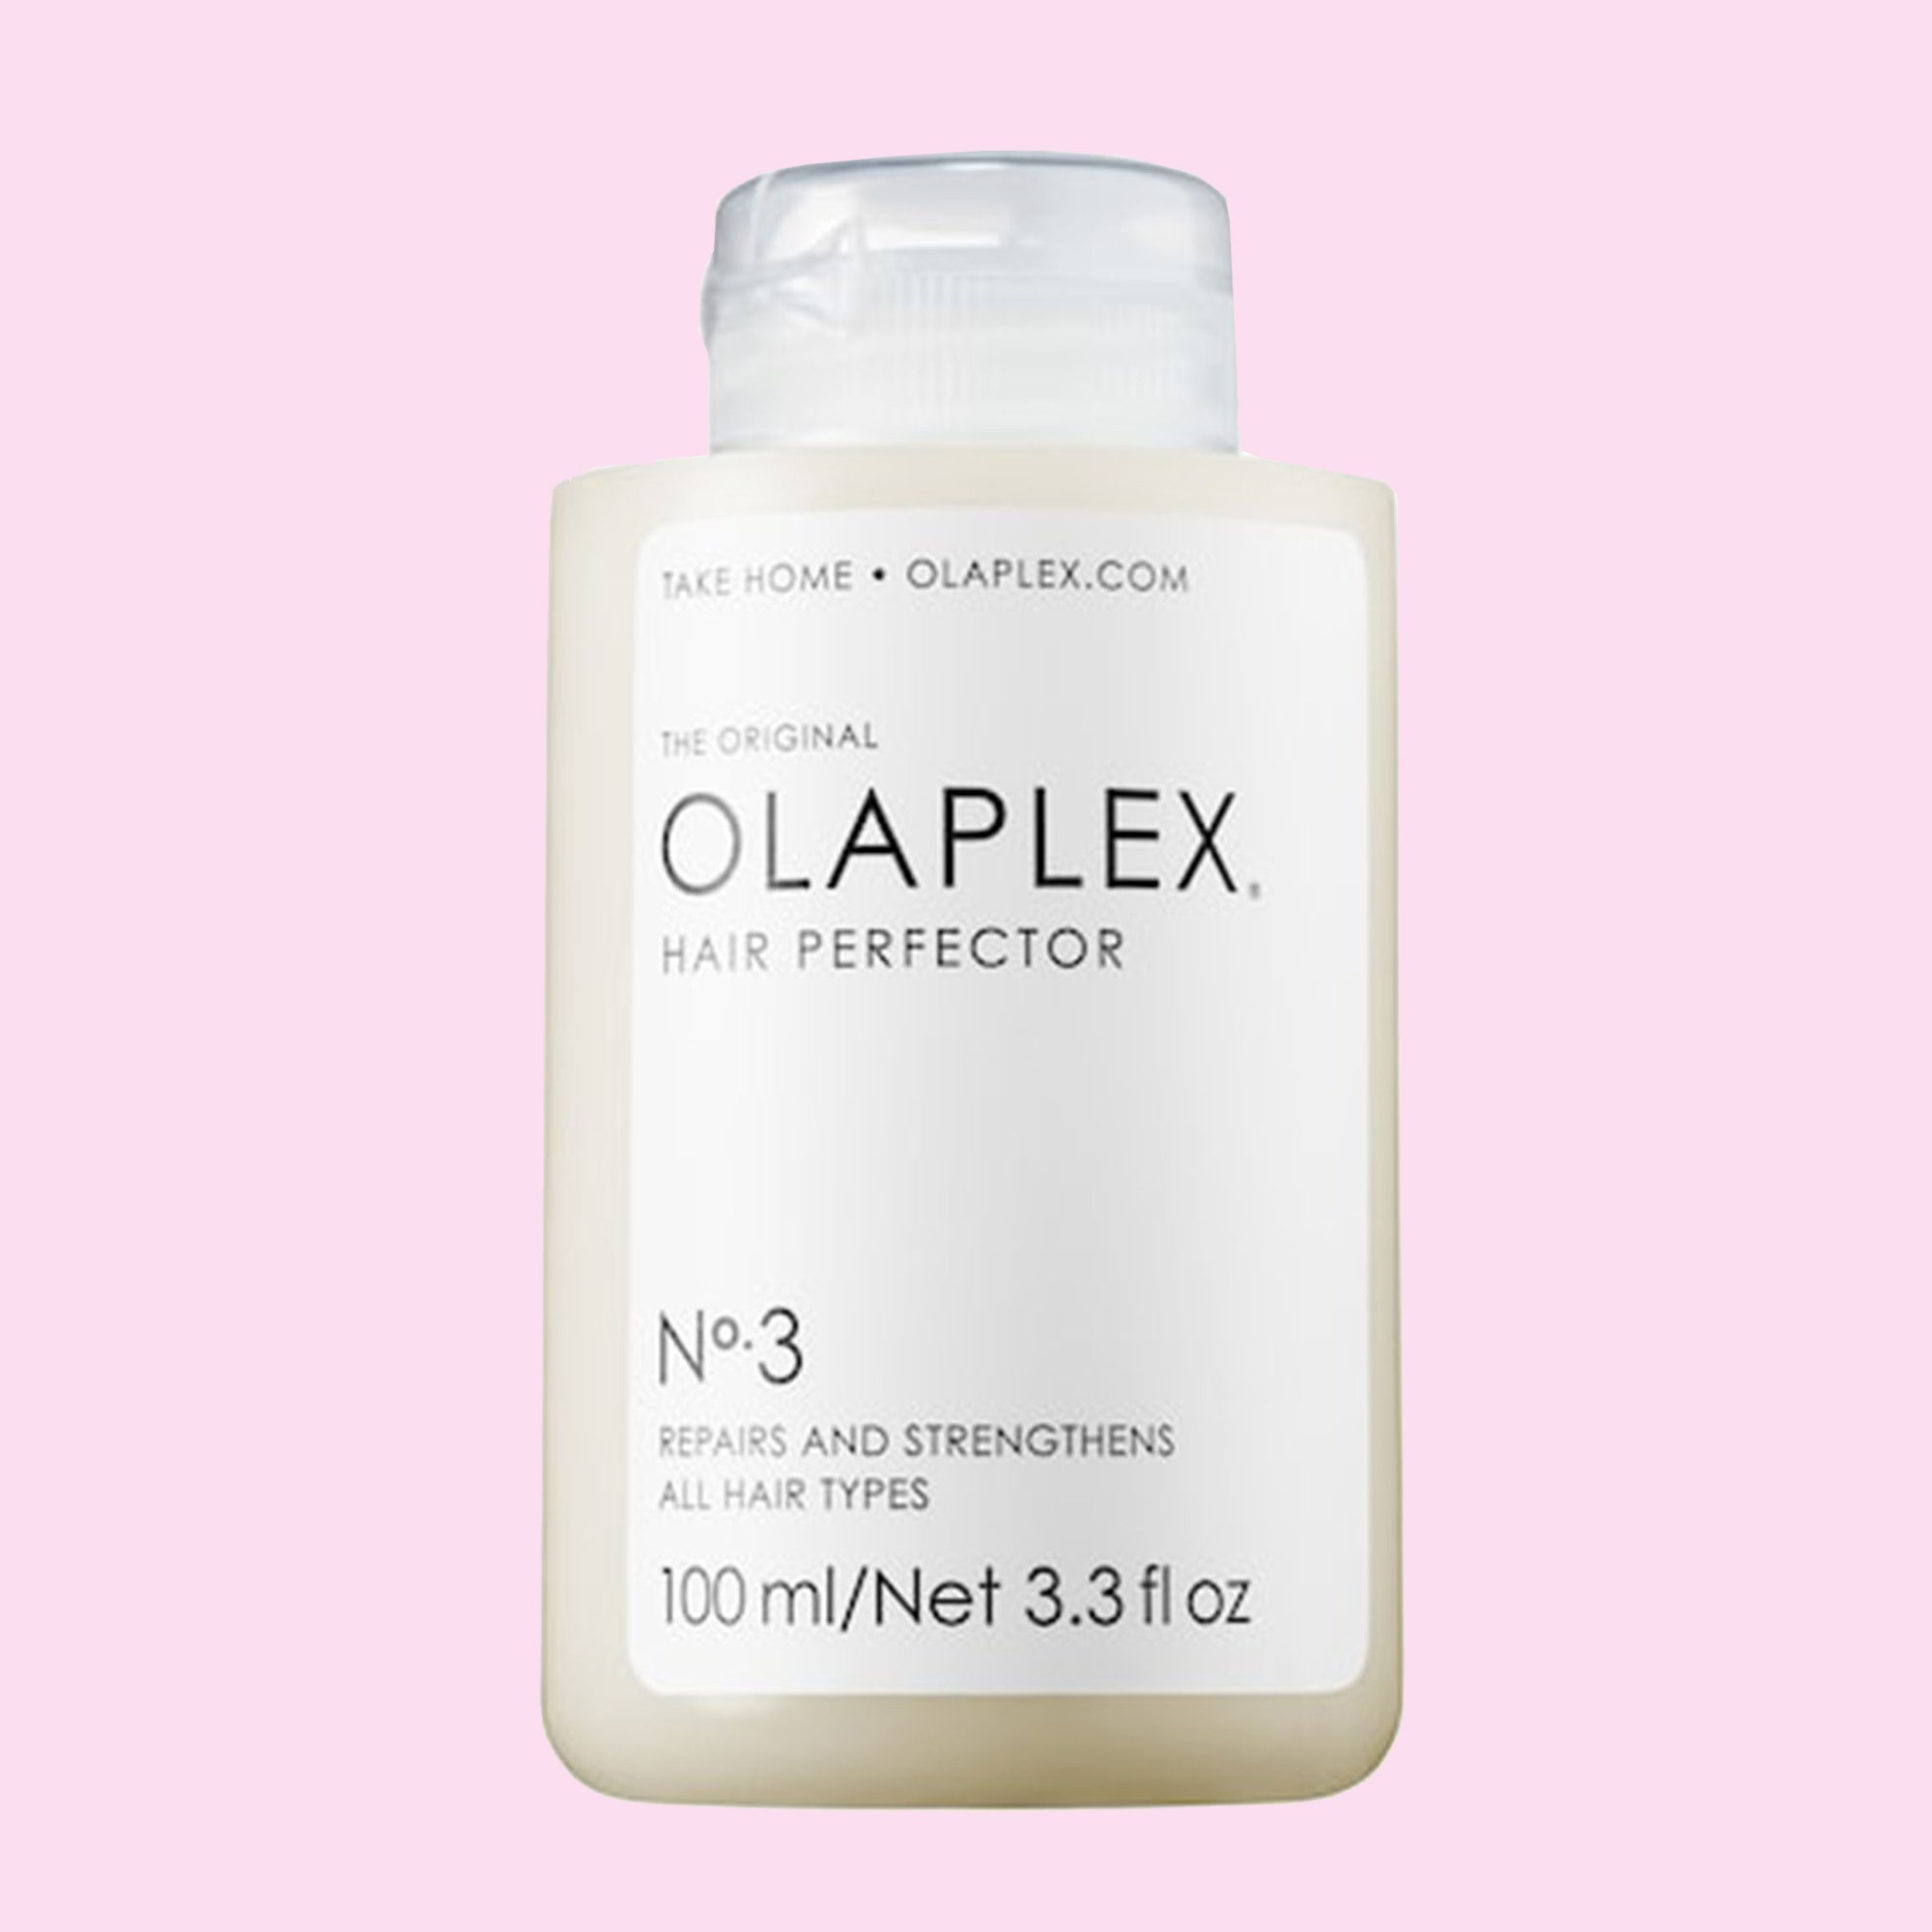 A bottle of Olaplex's No. 3 Hair Perfector displayed against a pink background.